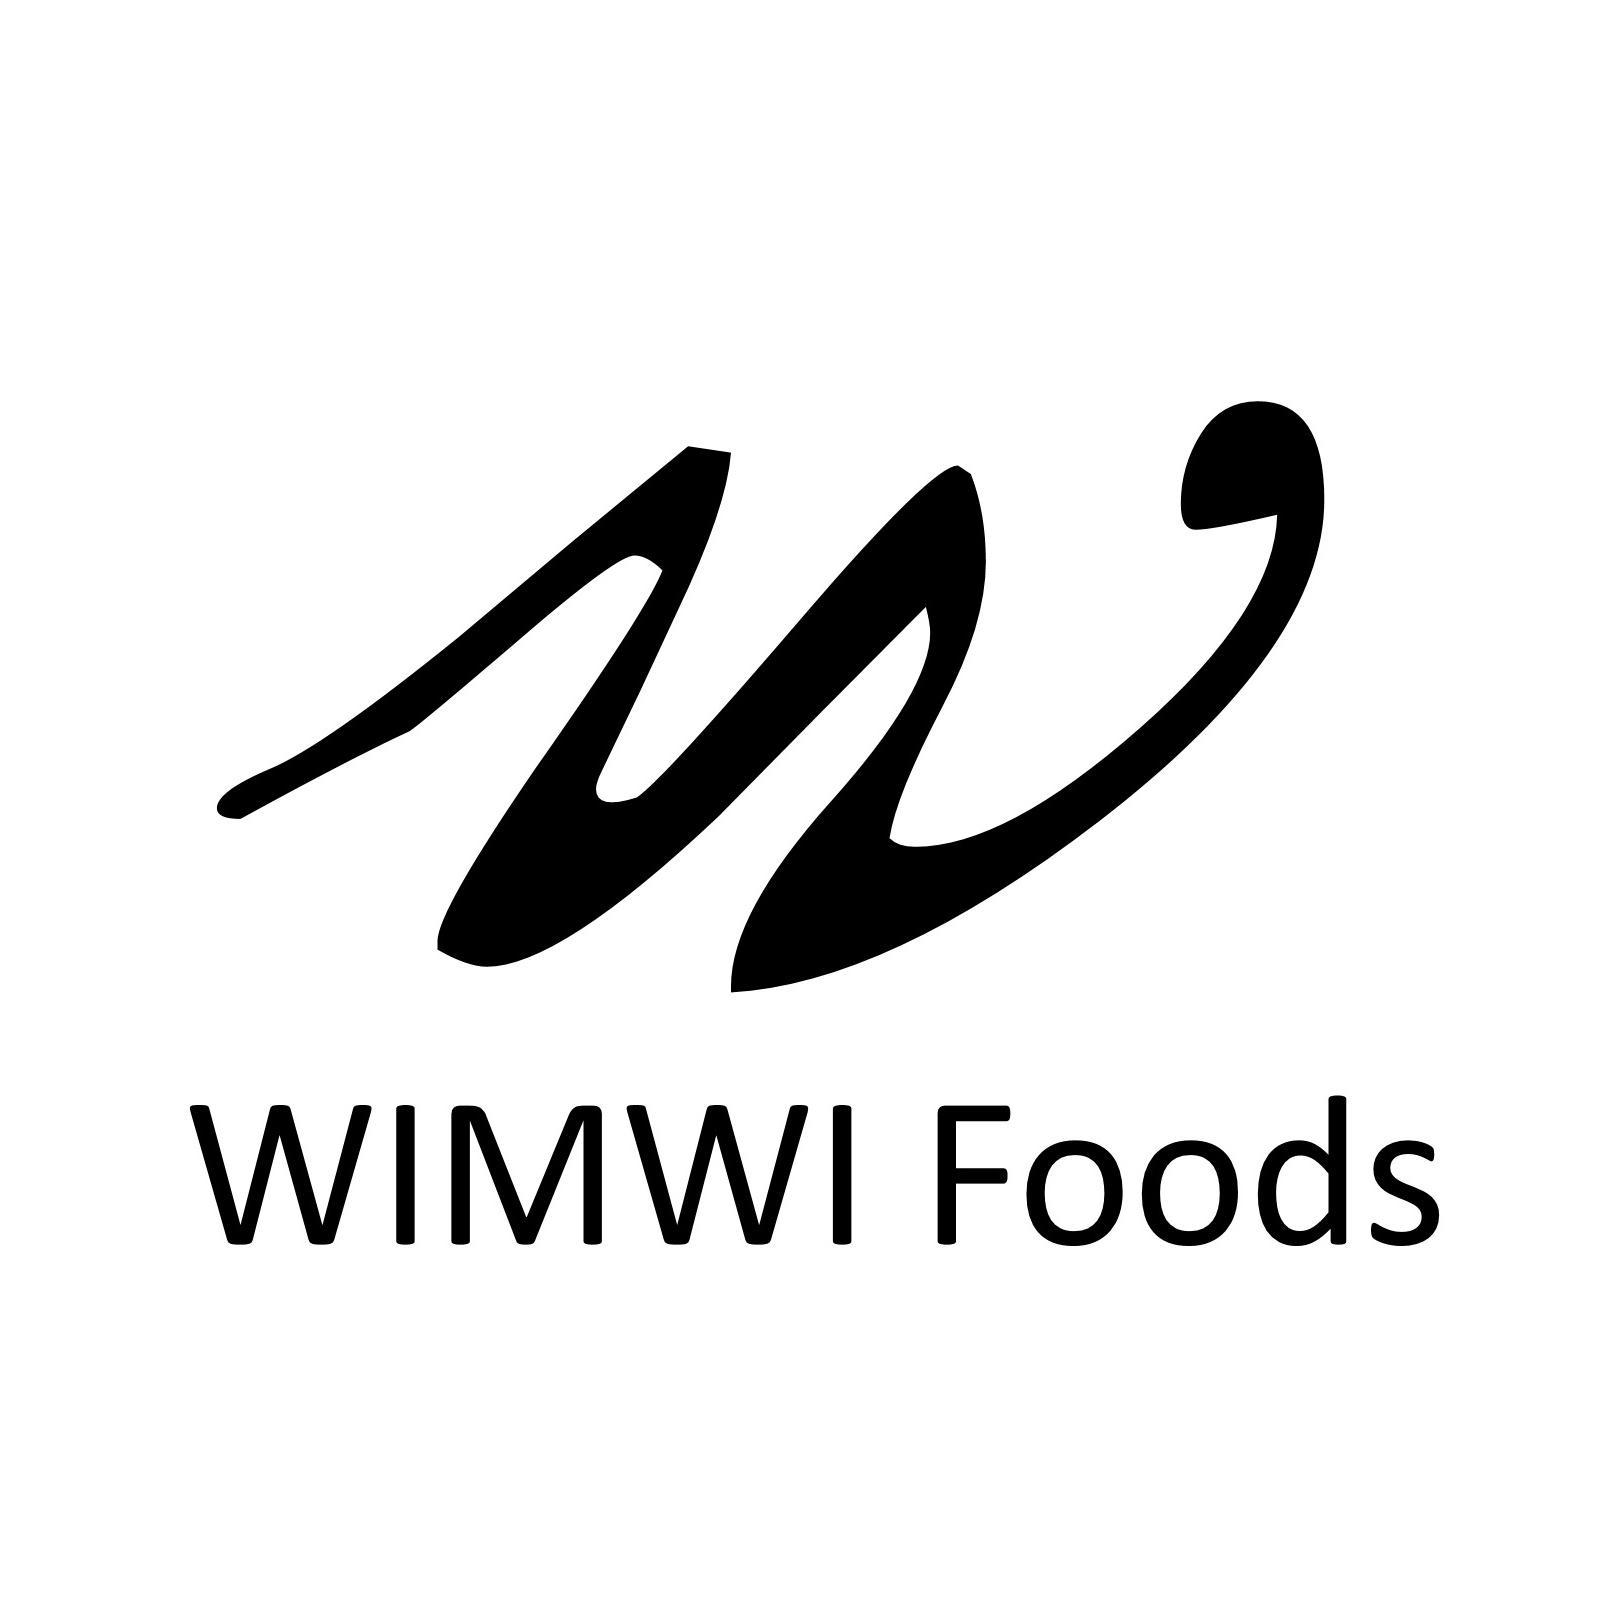 WANTED - TERRITORY SALES MANAGERS | WIMWI FOODS INC | CHENNAI